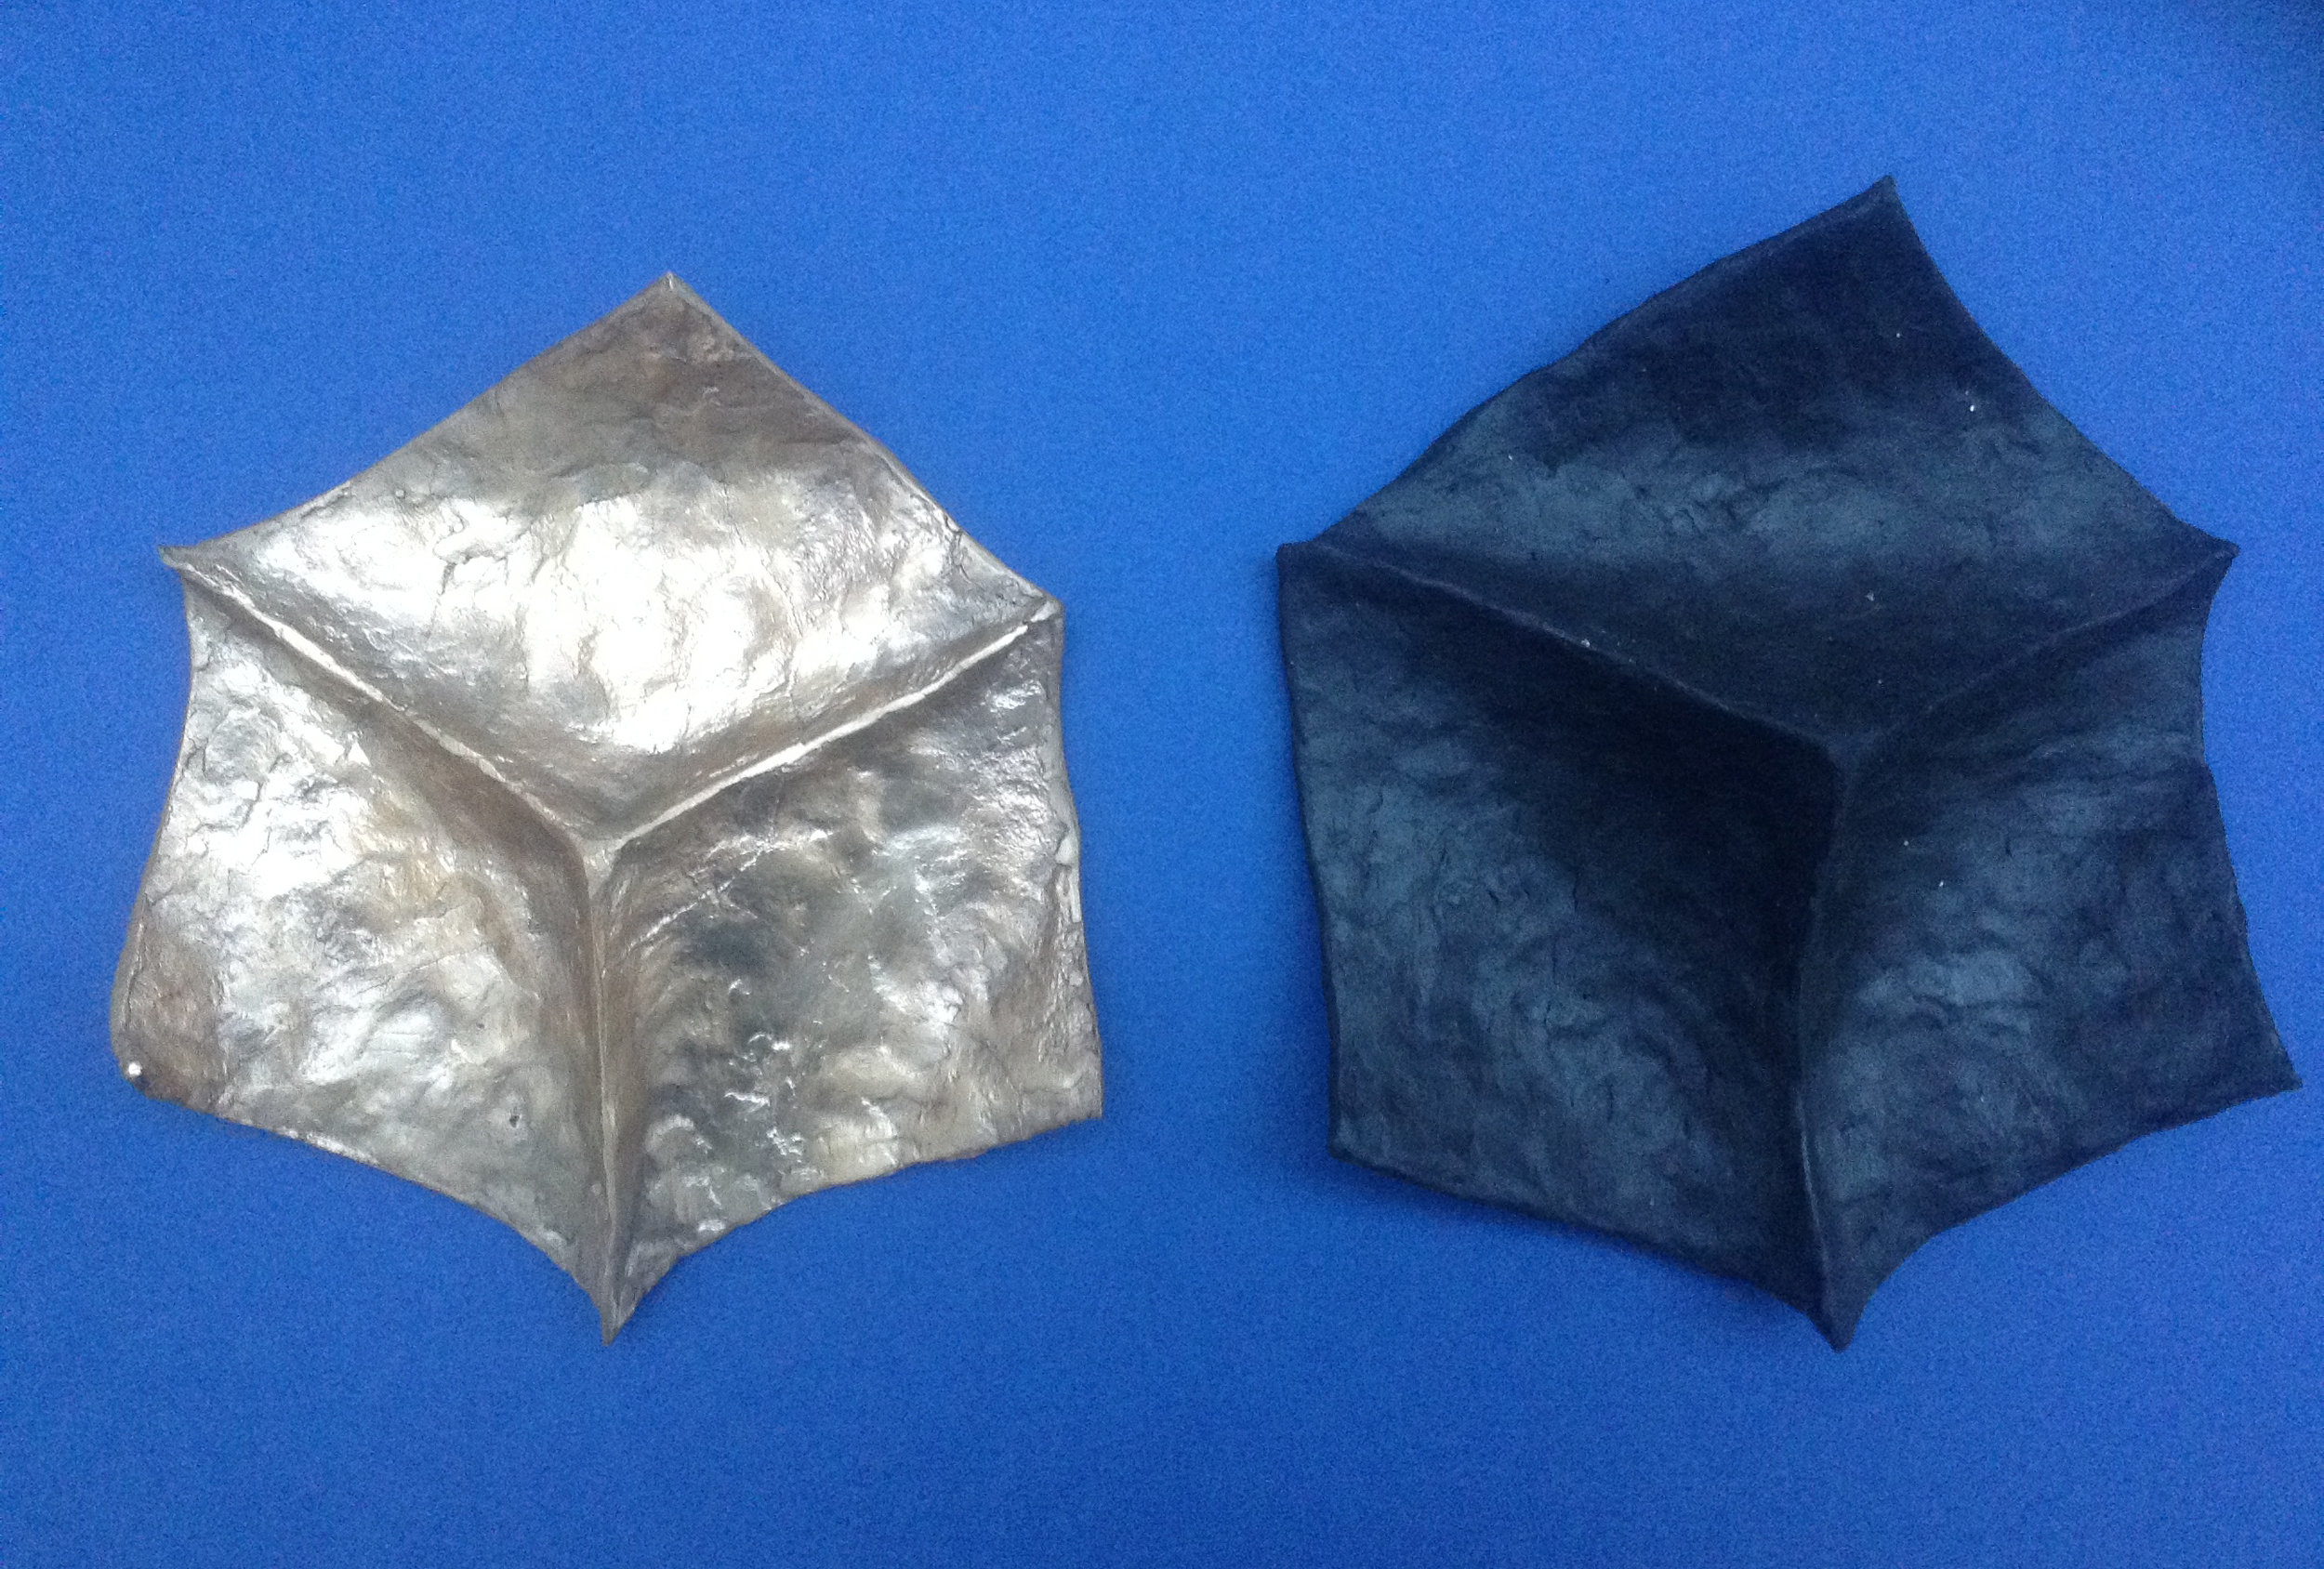 Before and after: cast bronze metal on the left, hand-molded wax on the right (black). Photo by: Mark Andrew Kelly